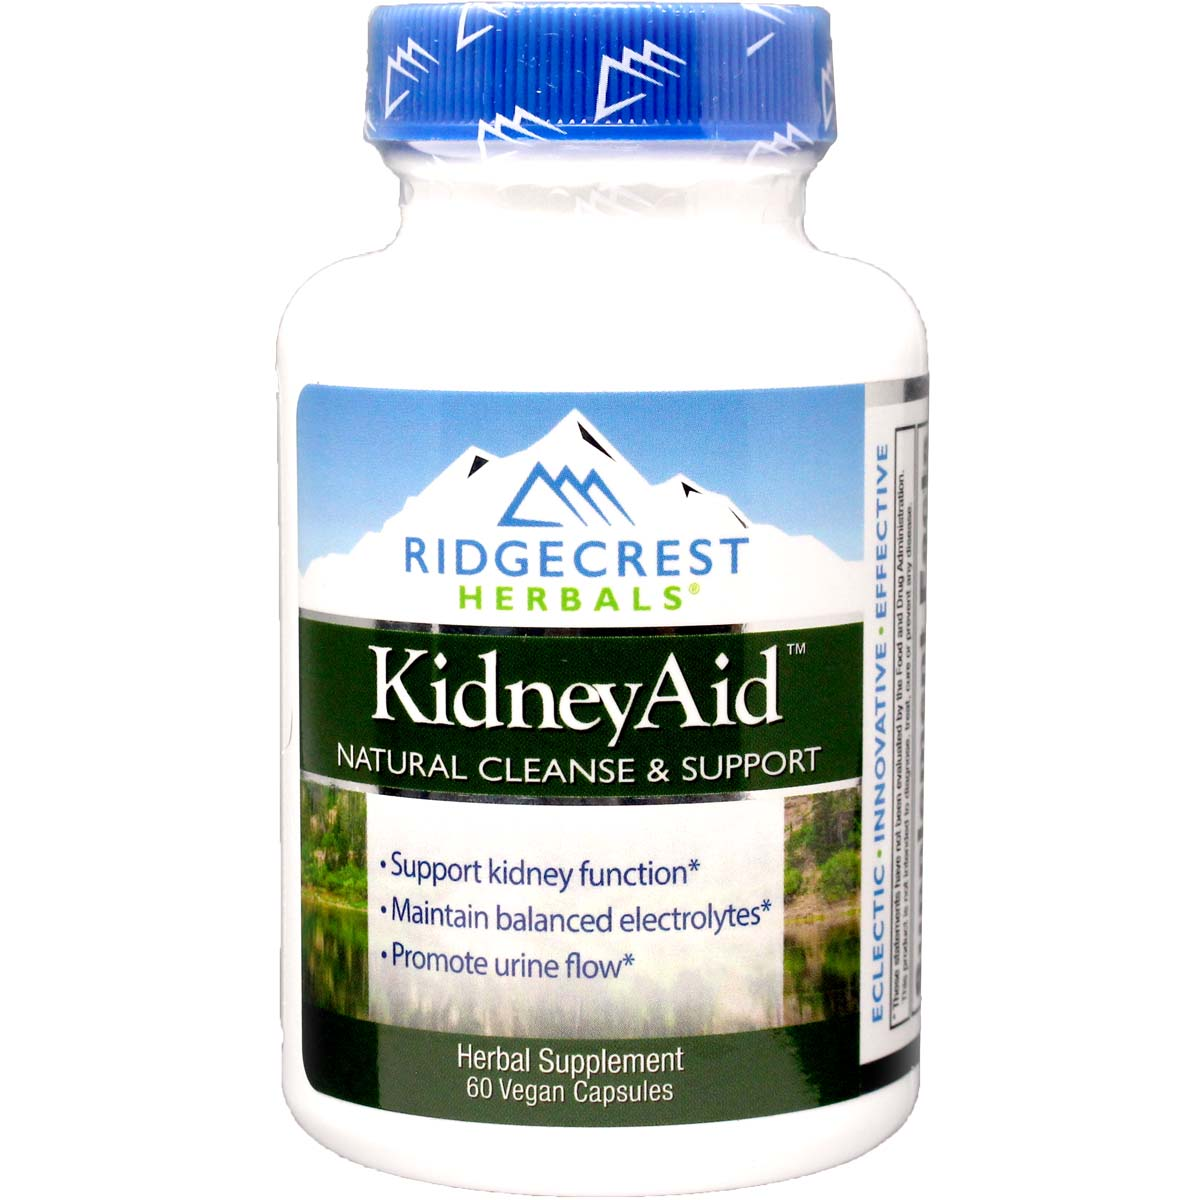 Supplements to support kidney function